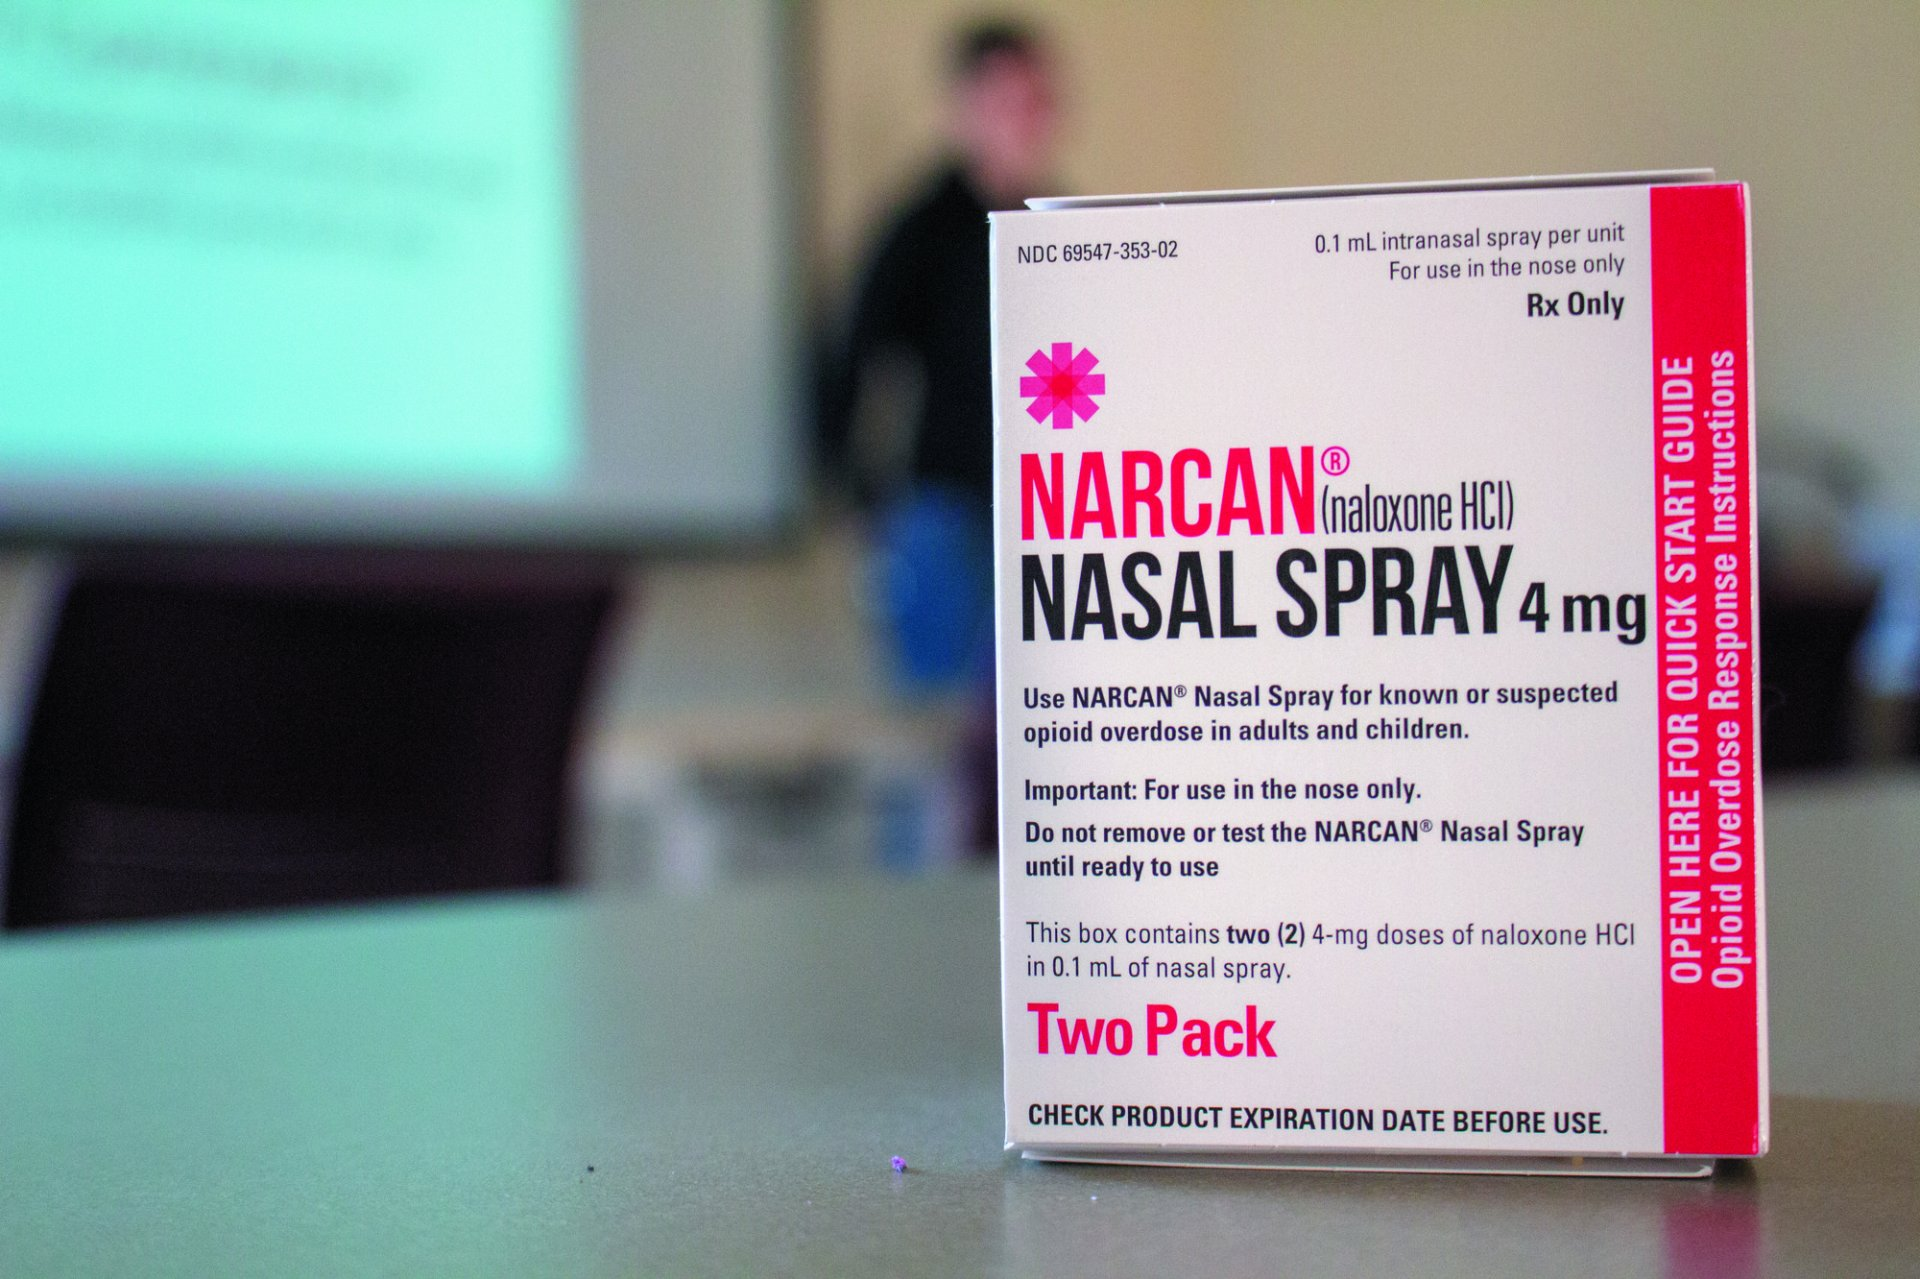 Narcan nasal spray is a safe and easy preventative of death for those overdosing from opioid.| Photo by T.William Wallin